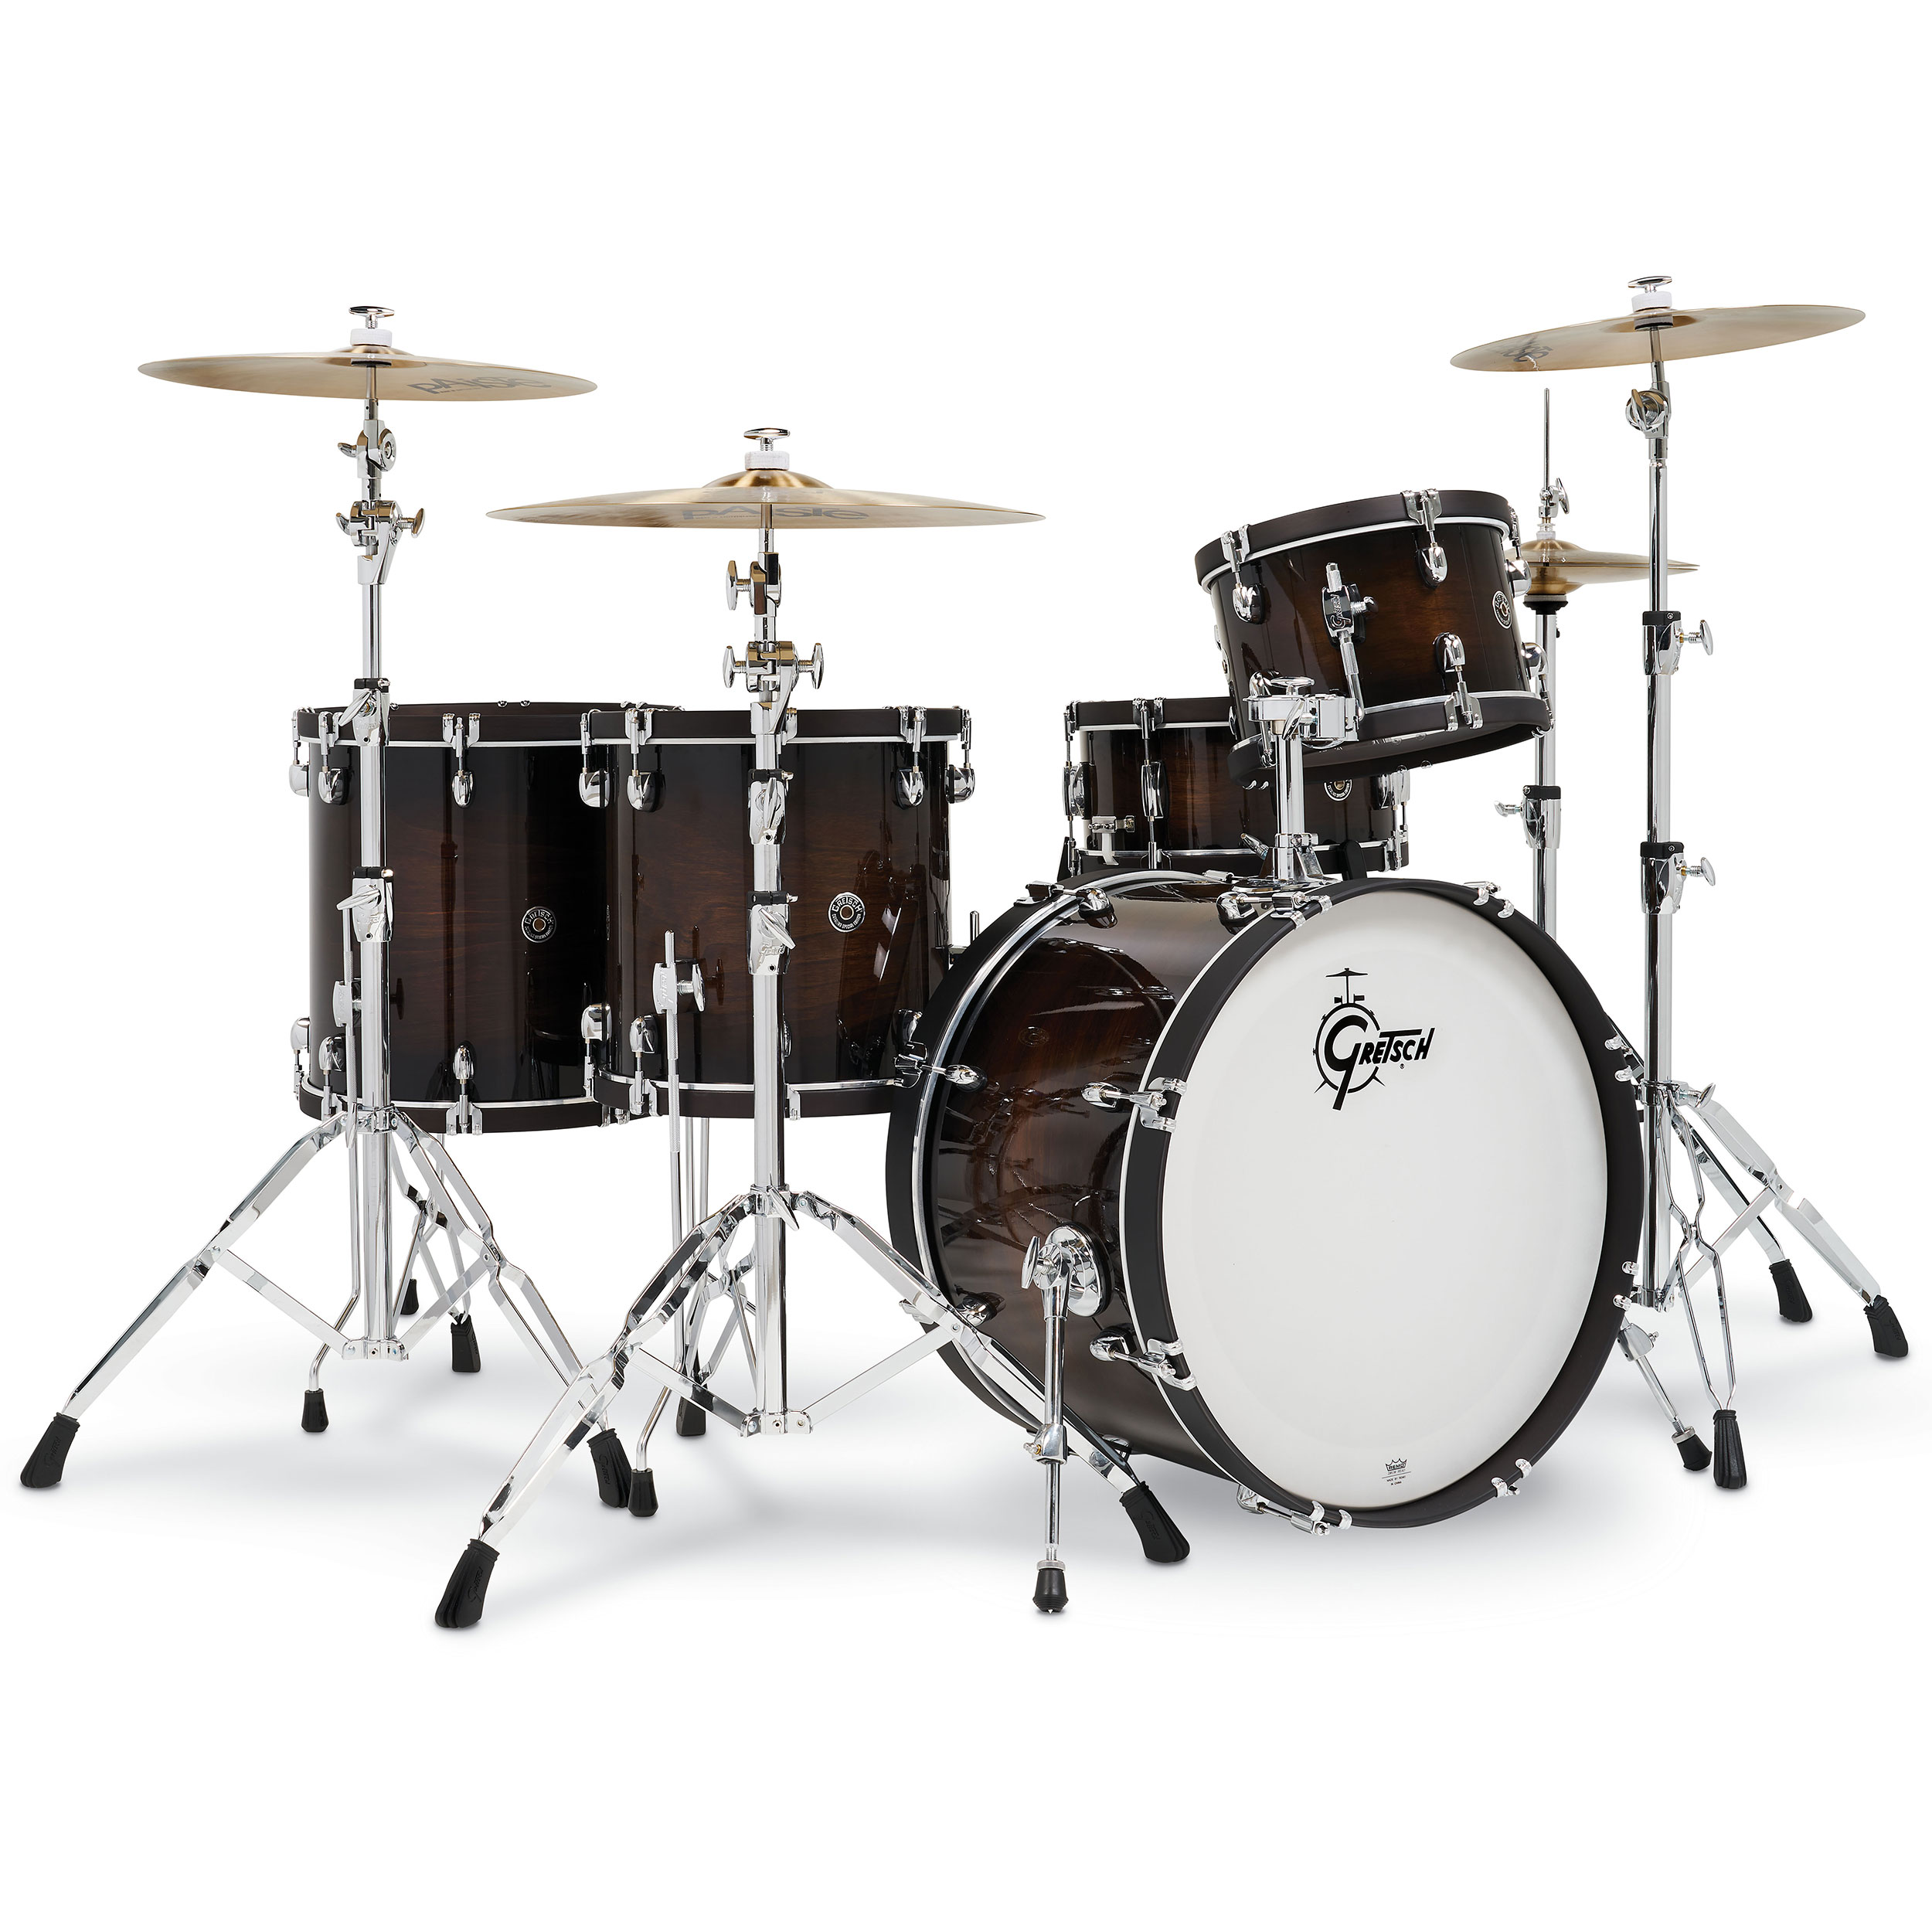 "Gretsch Catalina Special Edition 5-Piece Drum Set Shell Pack (22"" Bass, 12/14/16"" Toms, 14"" Snare) in Walnut Burst"